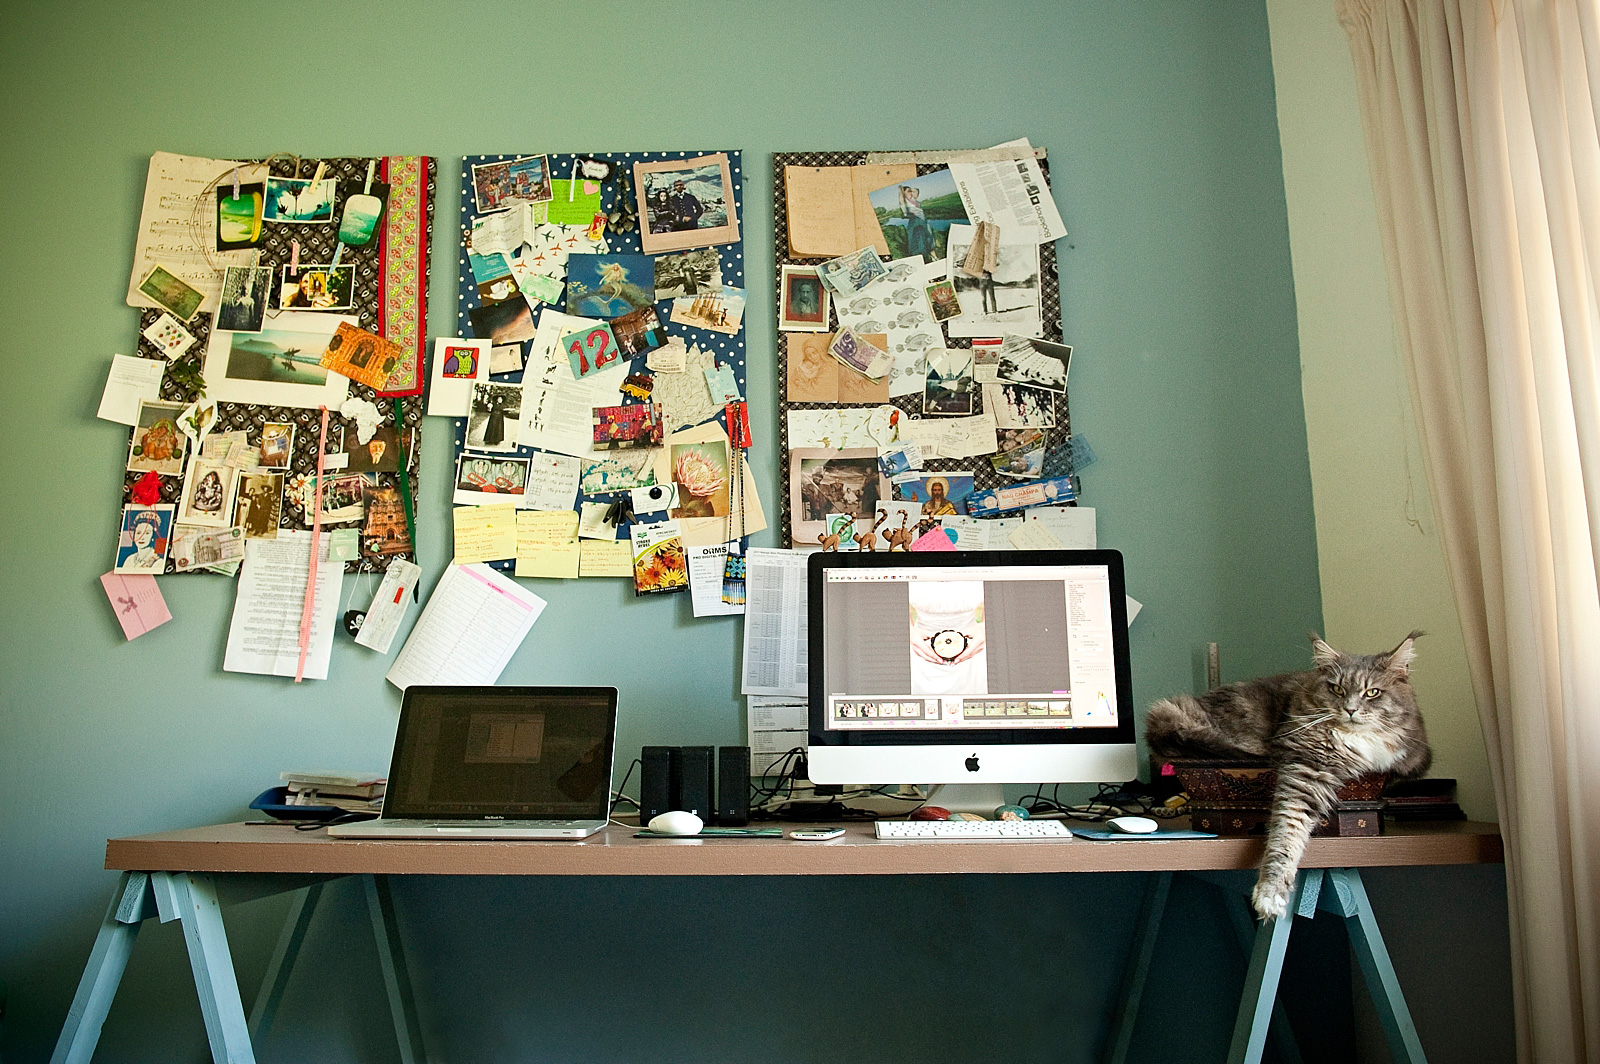 Main Coon at desk